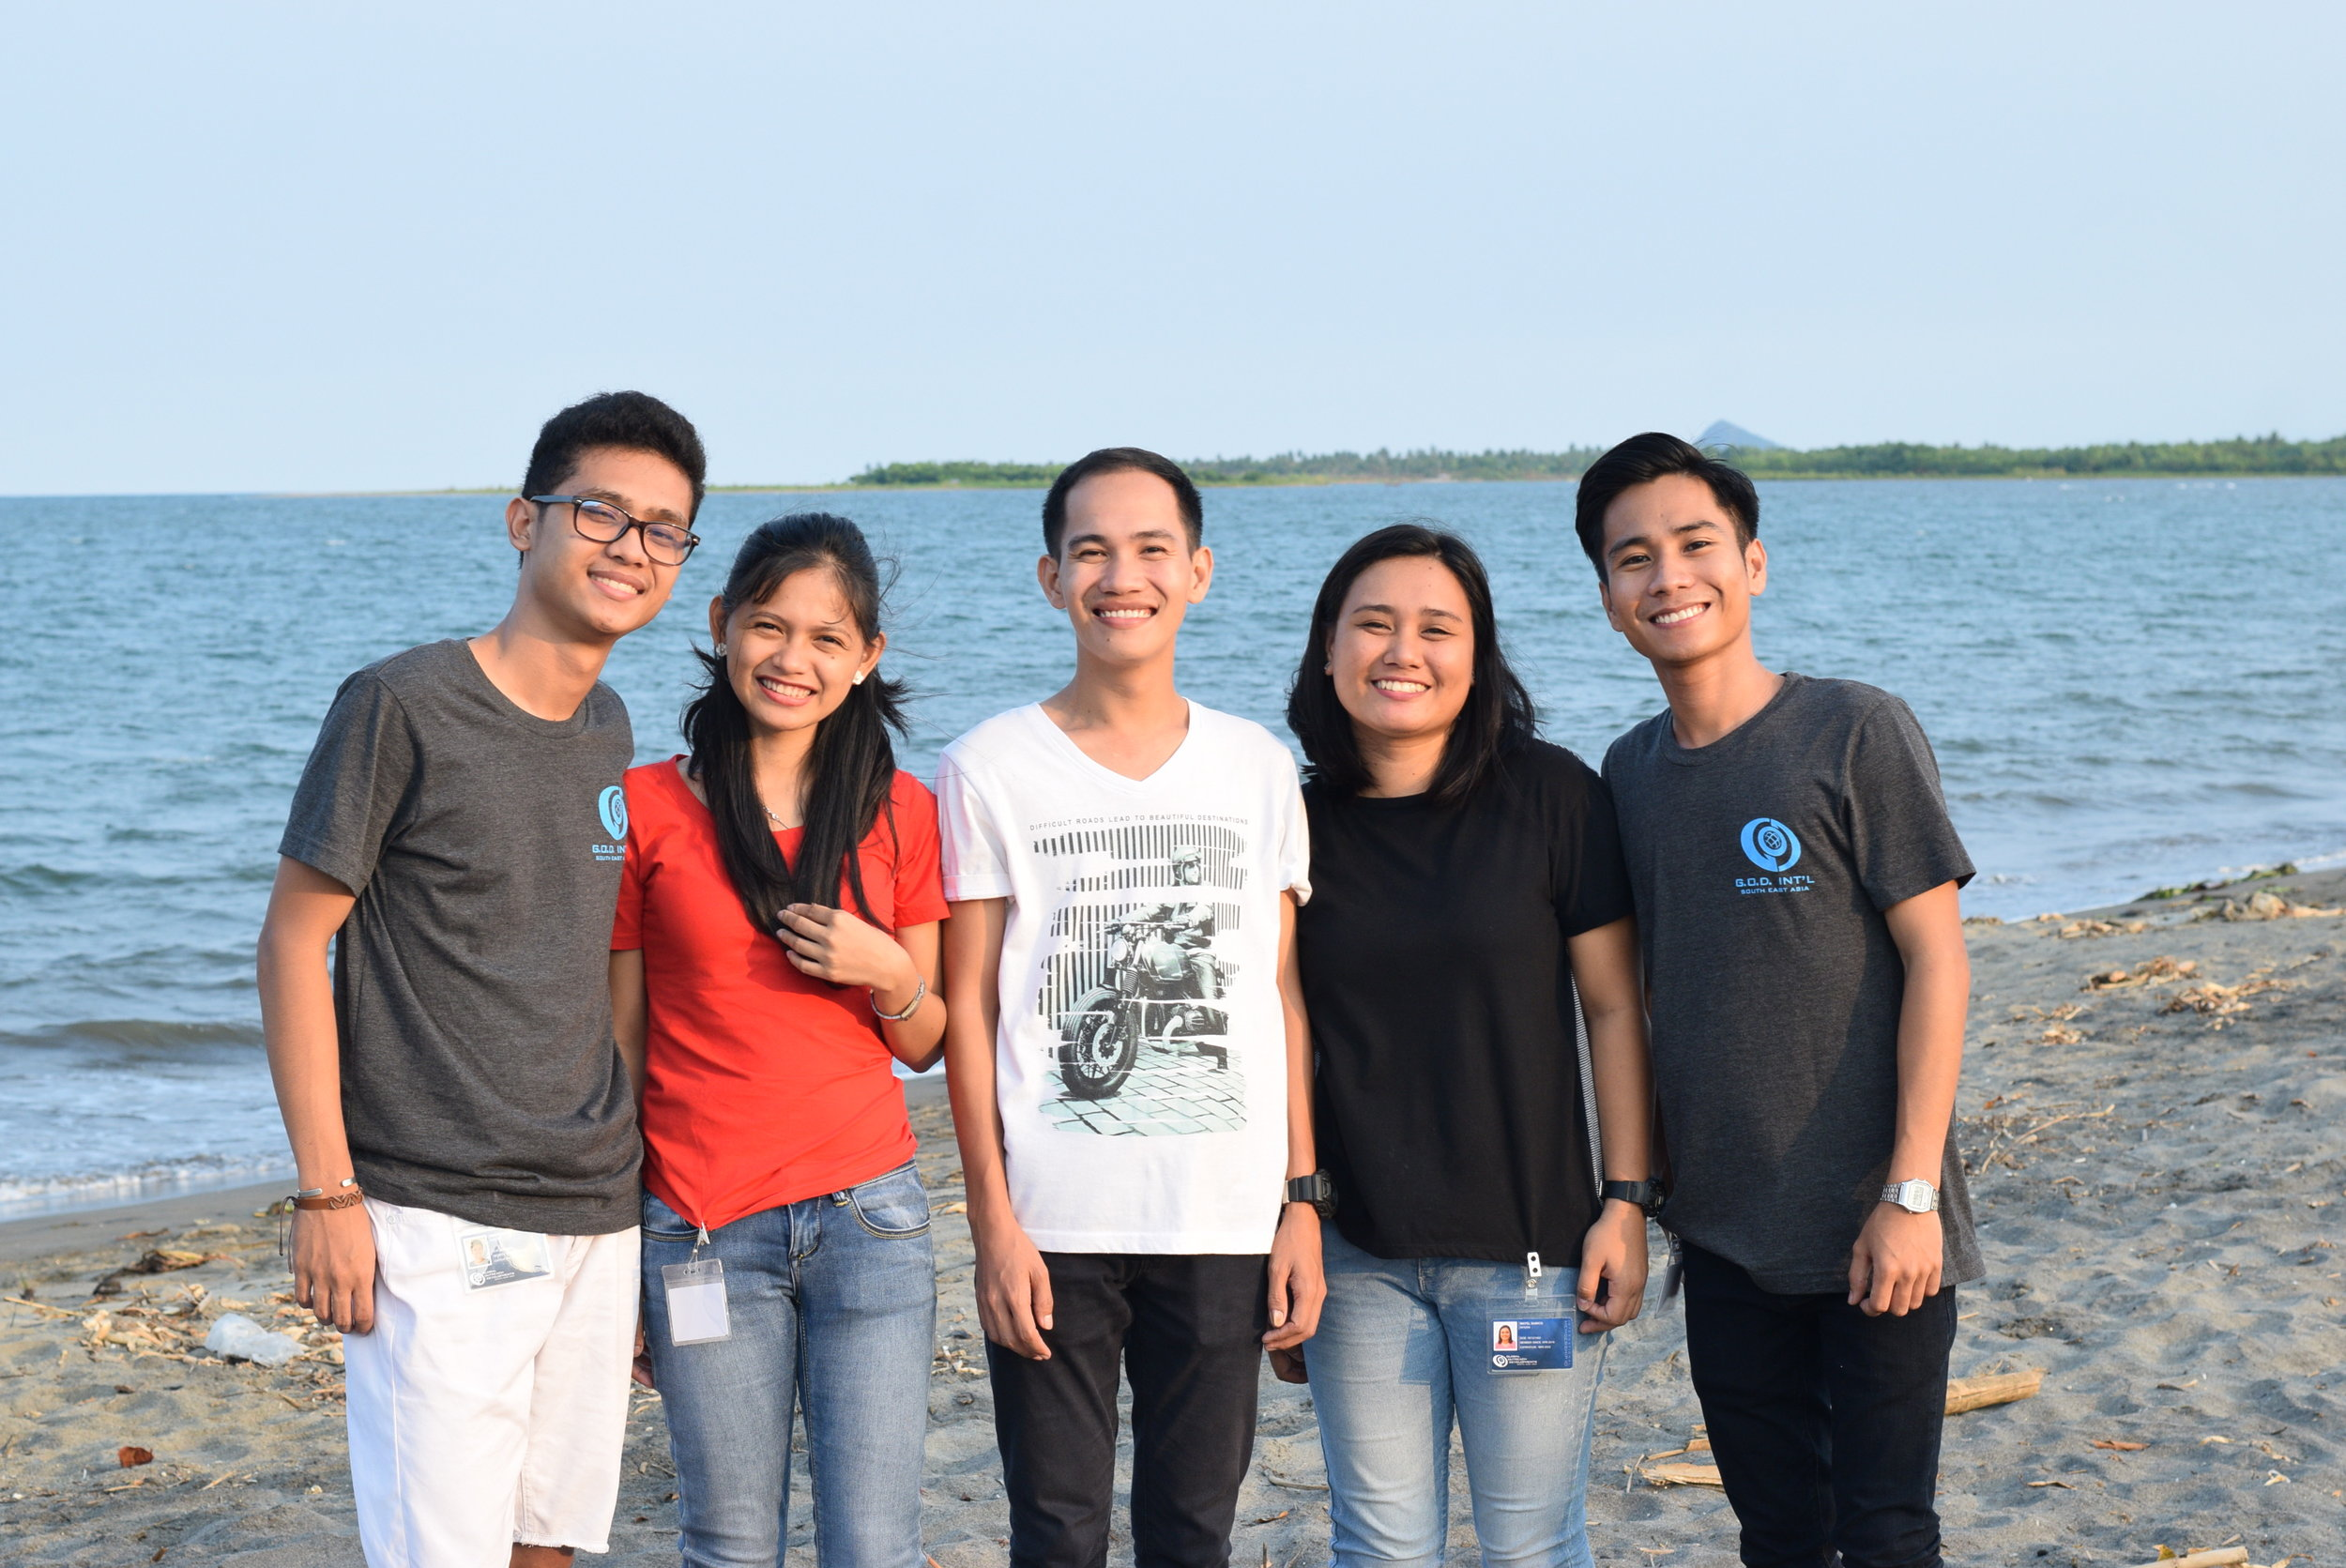 This year's SEA Internship crew is composed of MC Canañes, Sherelyn Campo, Pepito Acebedo, Mayel Sanico and Jairus Tumamak.